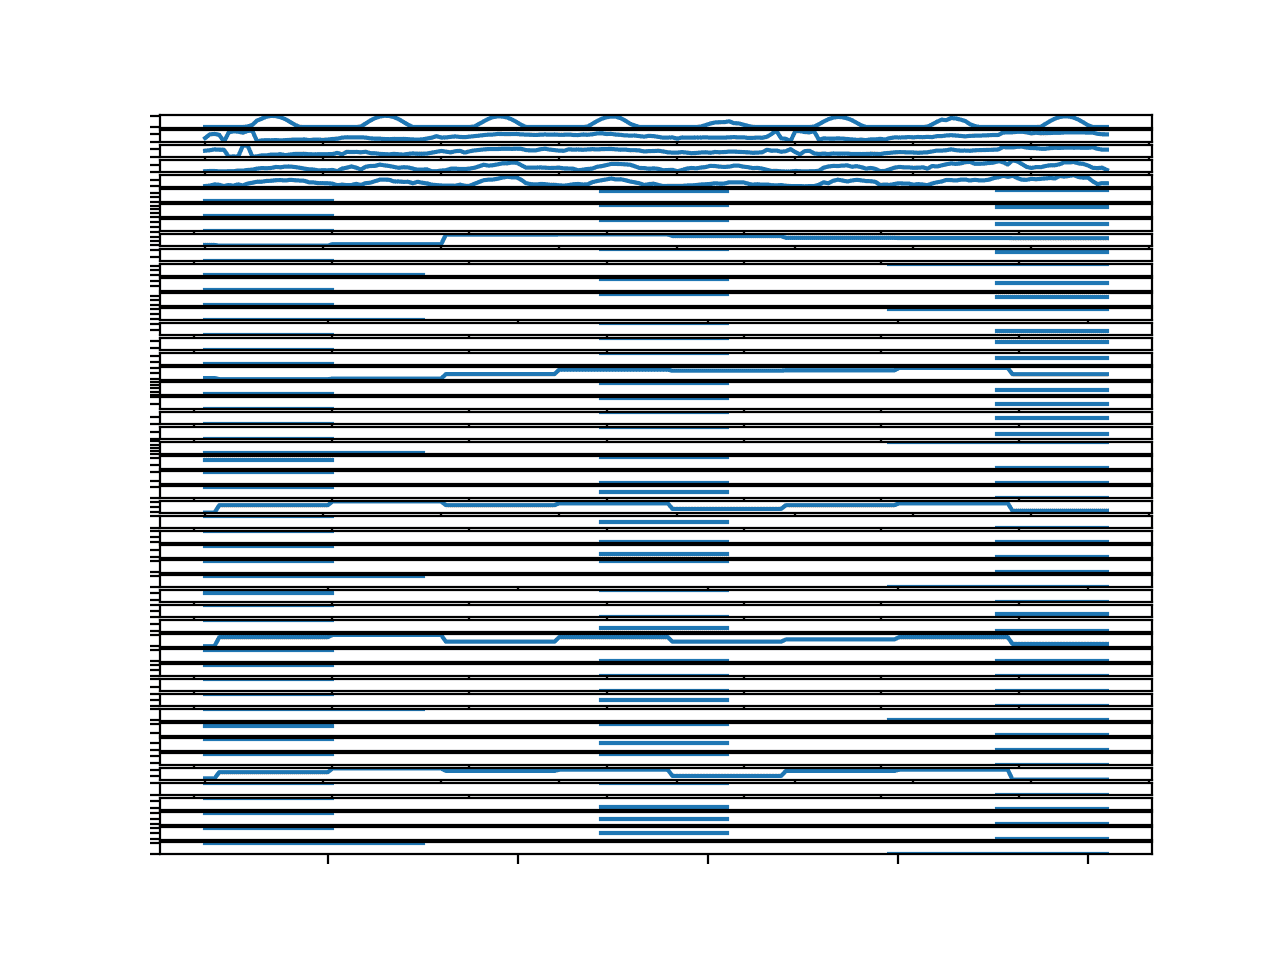 Parallel Time Series Line Plots For All Input Variables for 1 Chunks